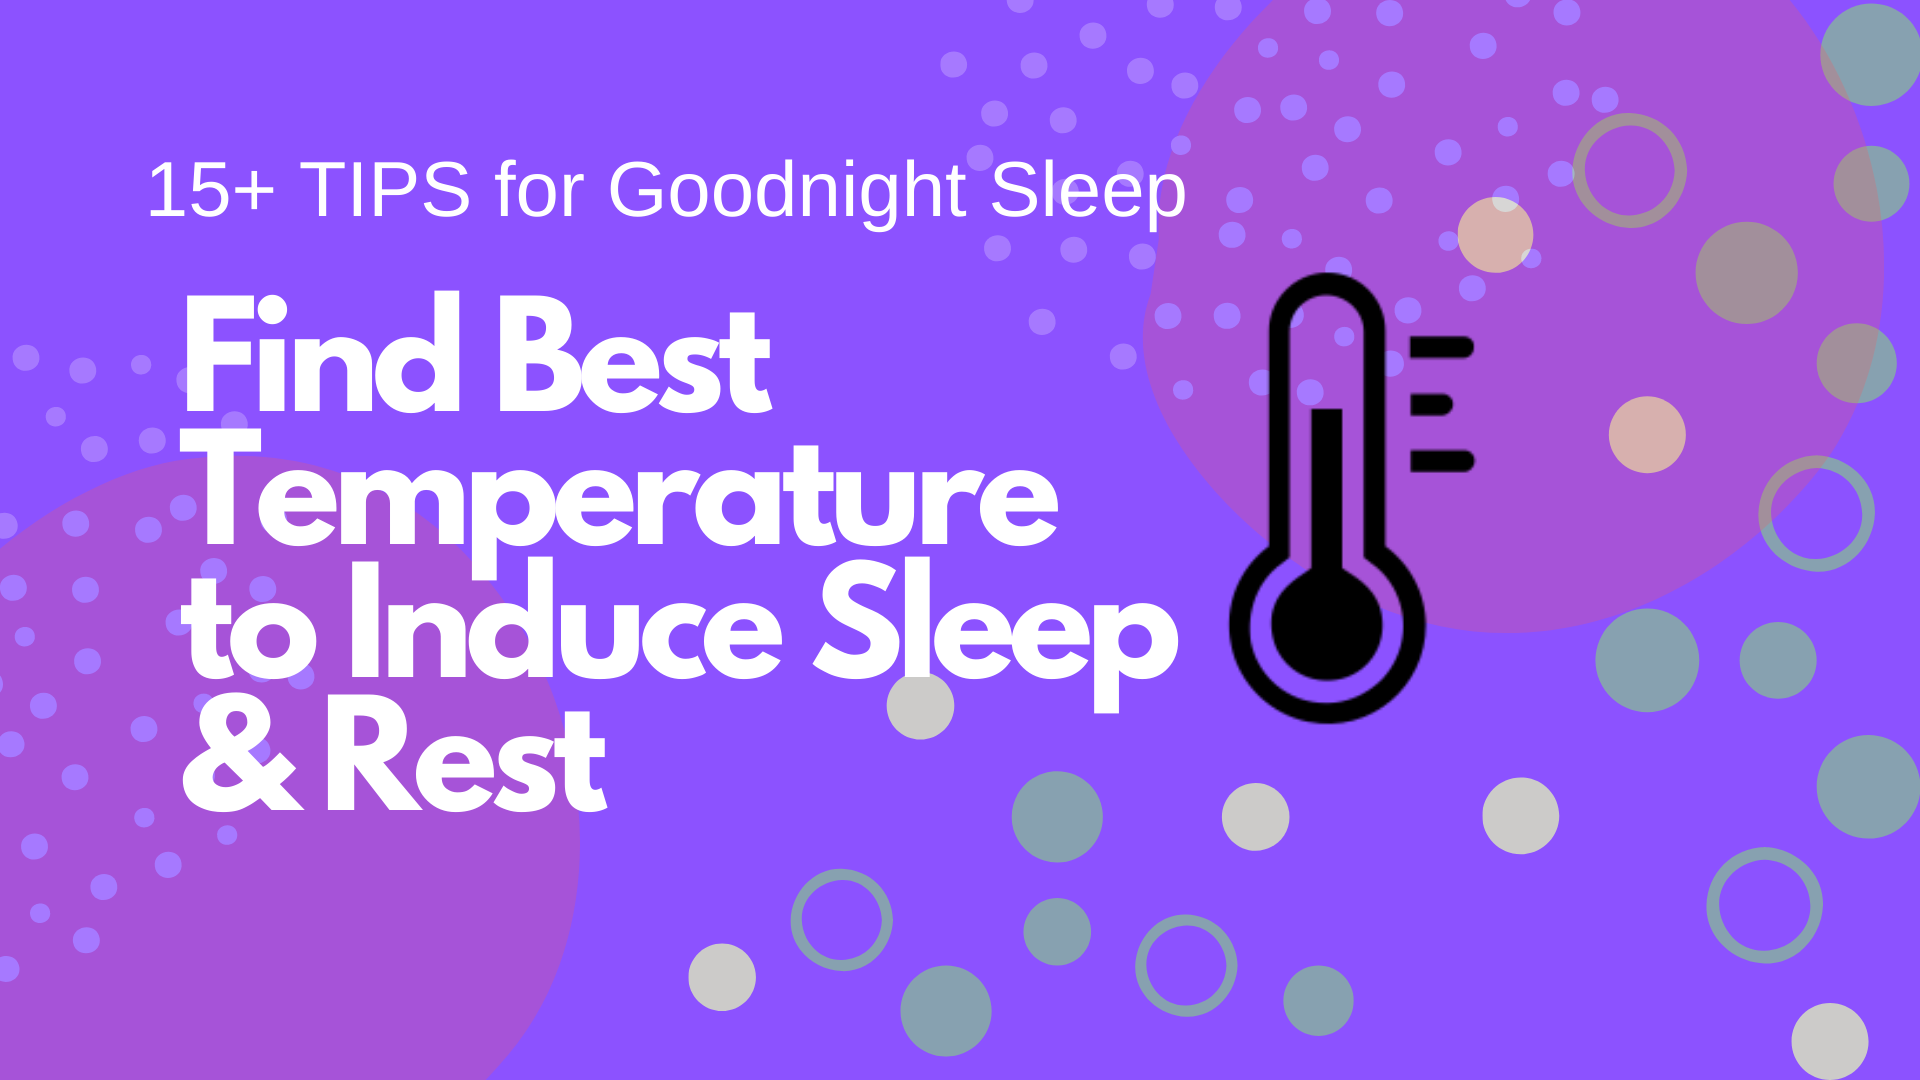 Find Best Temperature to Induce Rest